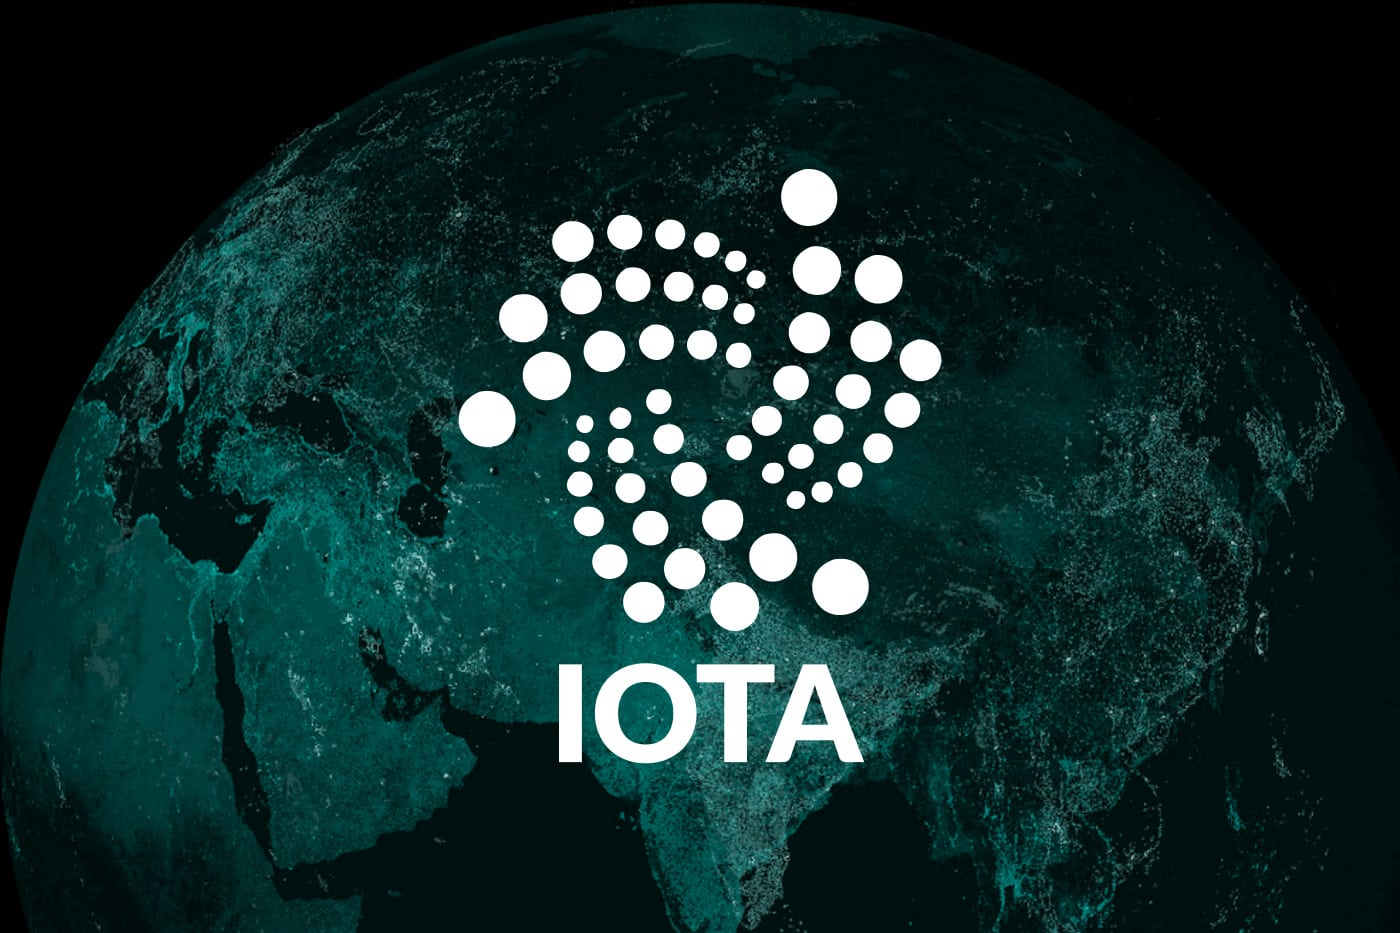 IOTA MIOTA - IOTA (MIOTA) Teams up with Canada's Kontrol Energy Corp. after Samuel Reid gets on board